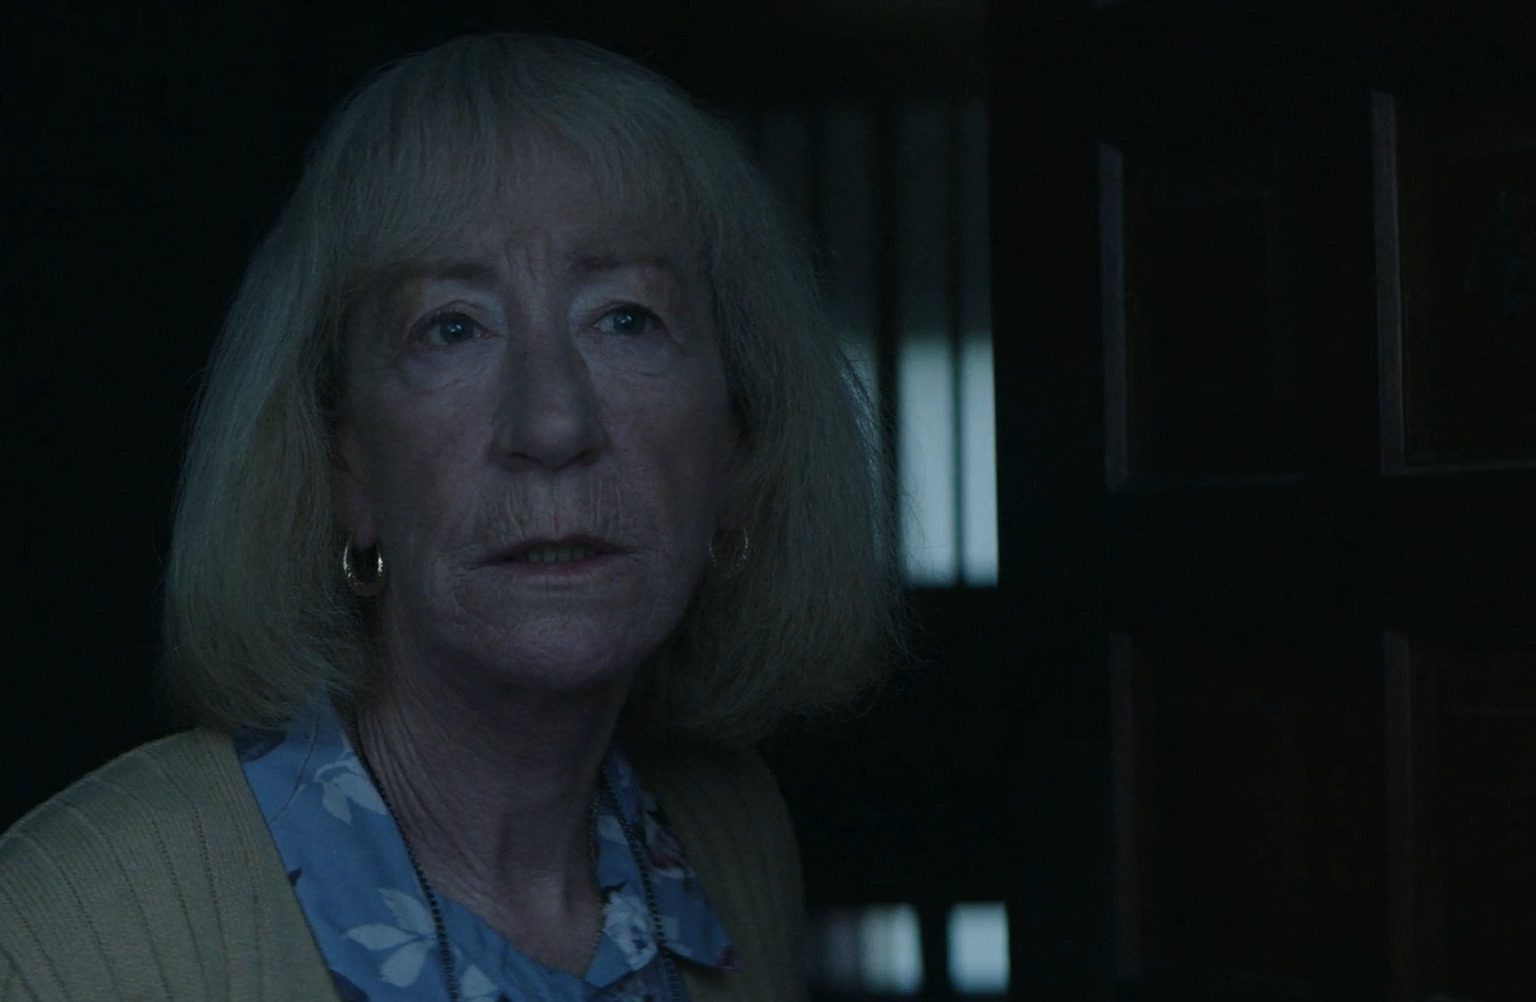 A still from the Guilt